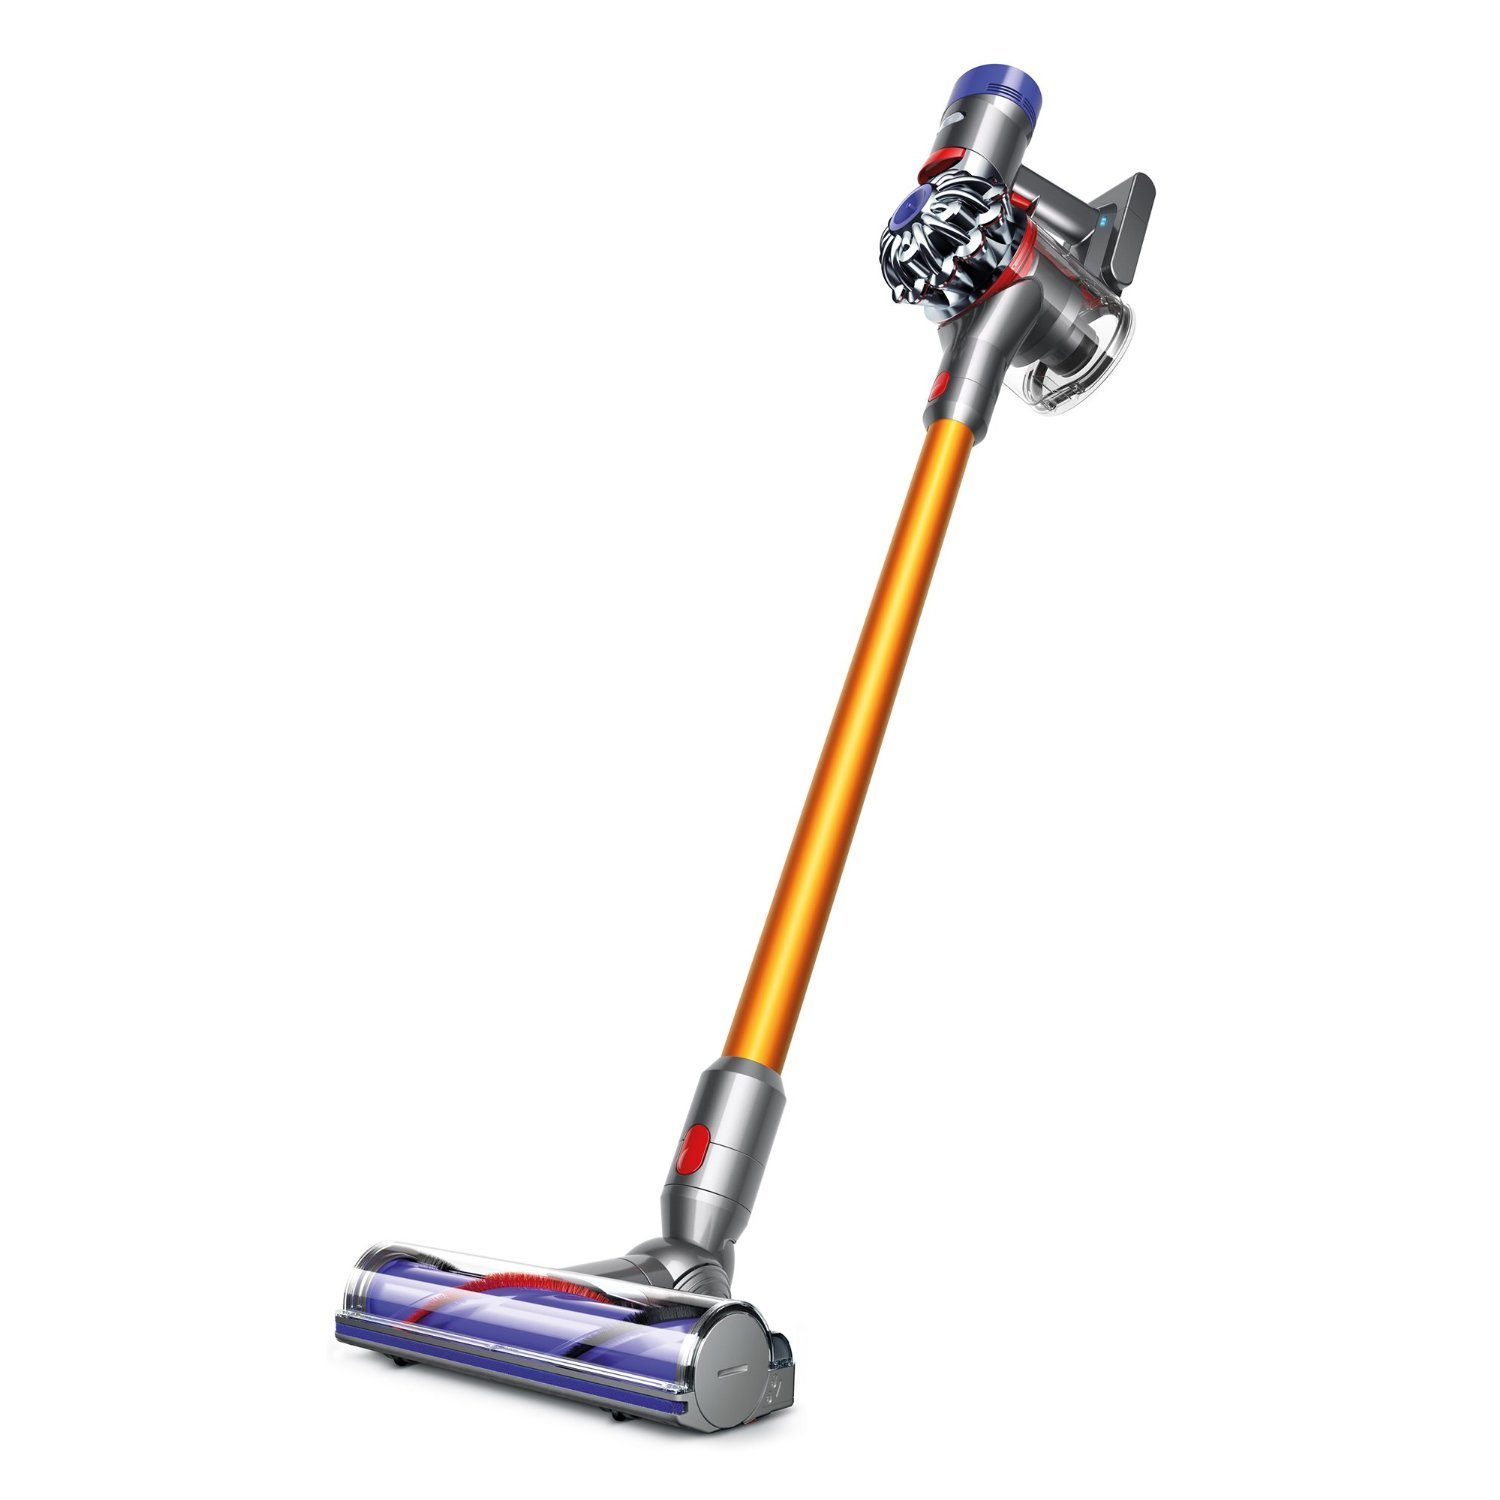 Dyson V8 Absolute Cord-Free Stick Vacuum, Iron/Yellow (Renewed) by Dyson